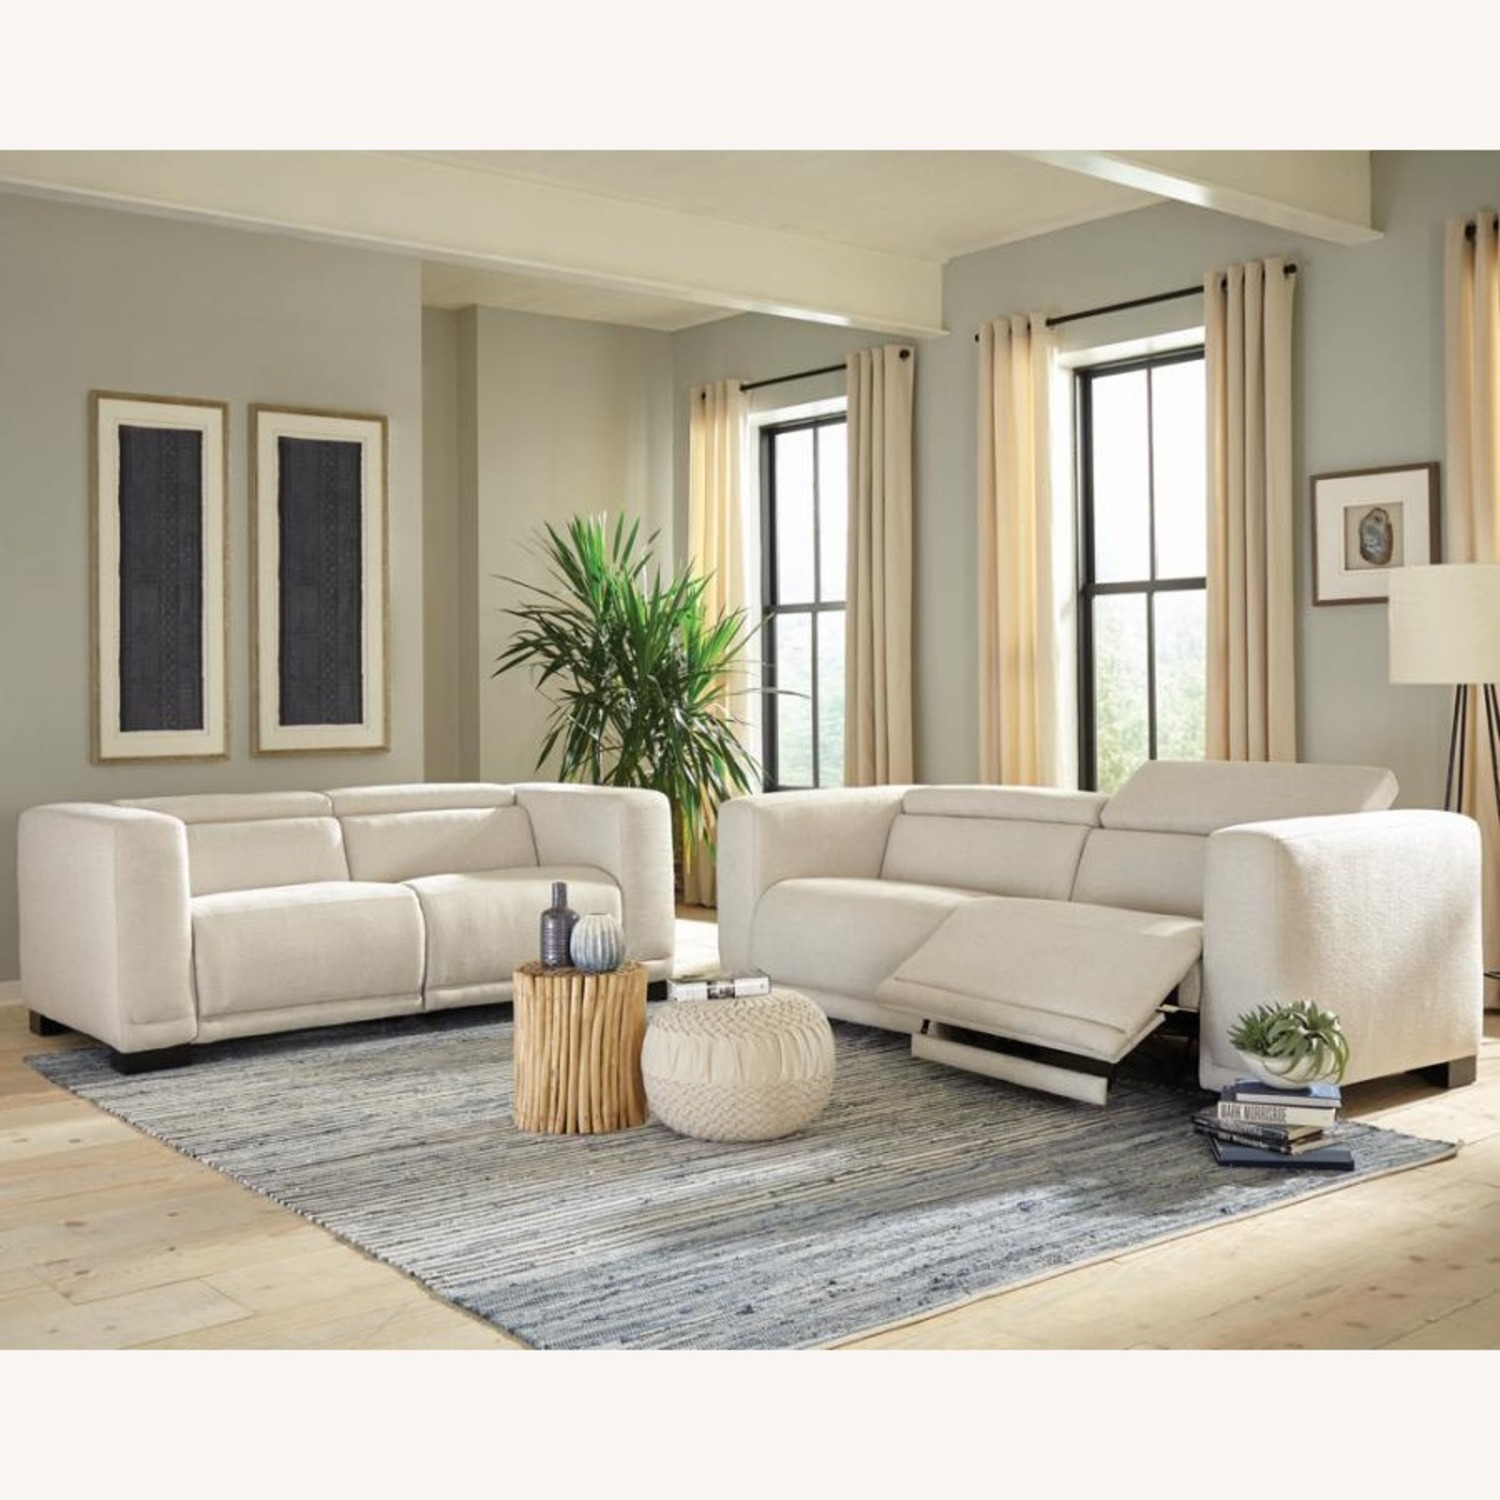 Power Recliner Sofa In Beige Performance Chenille - image-6